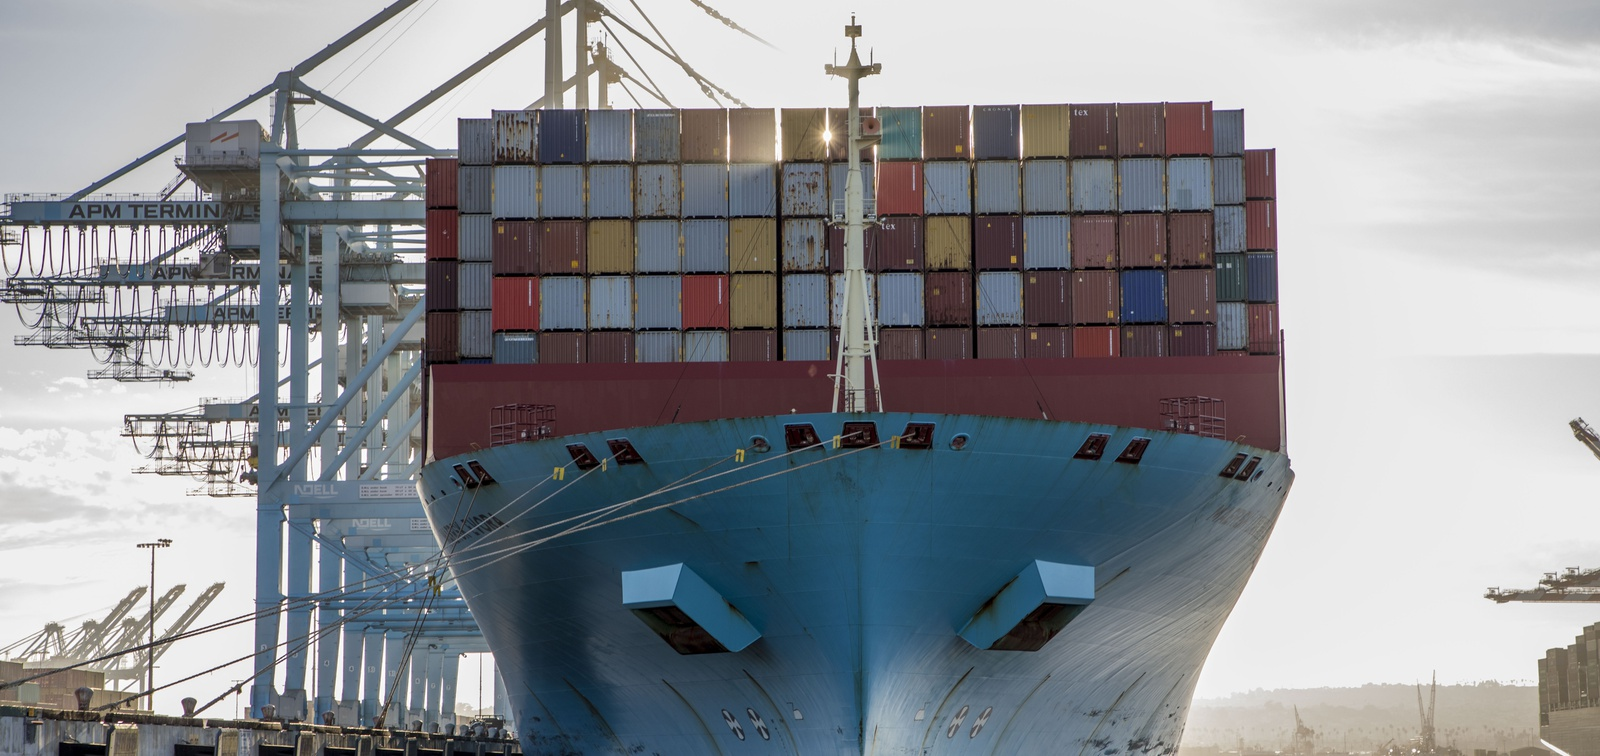 How carriers handle IMO 2020 could affect capacity: Drewry